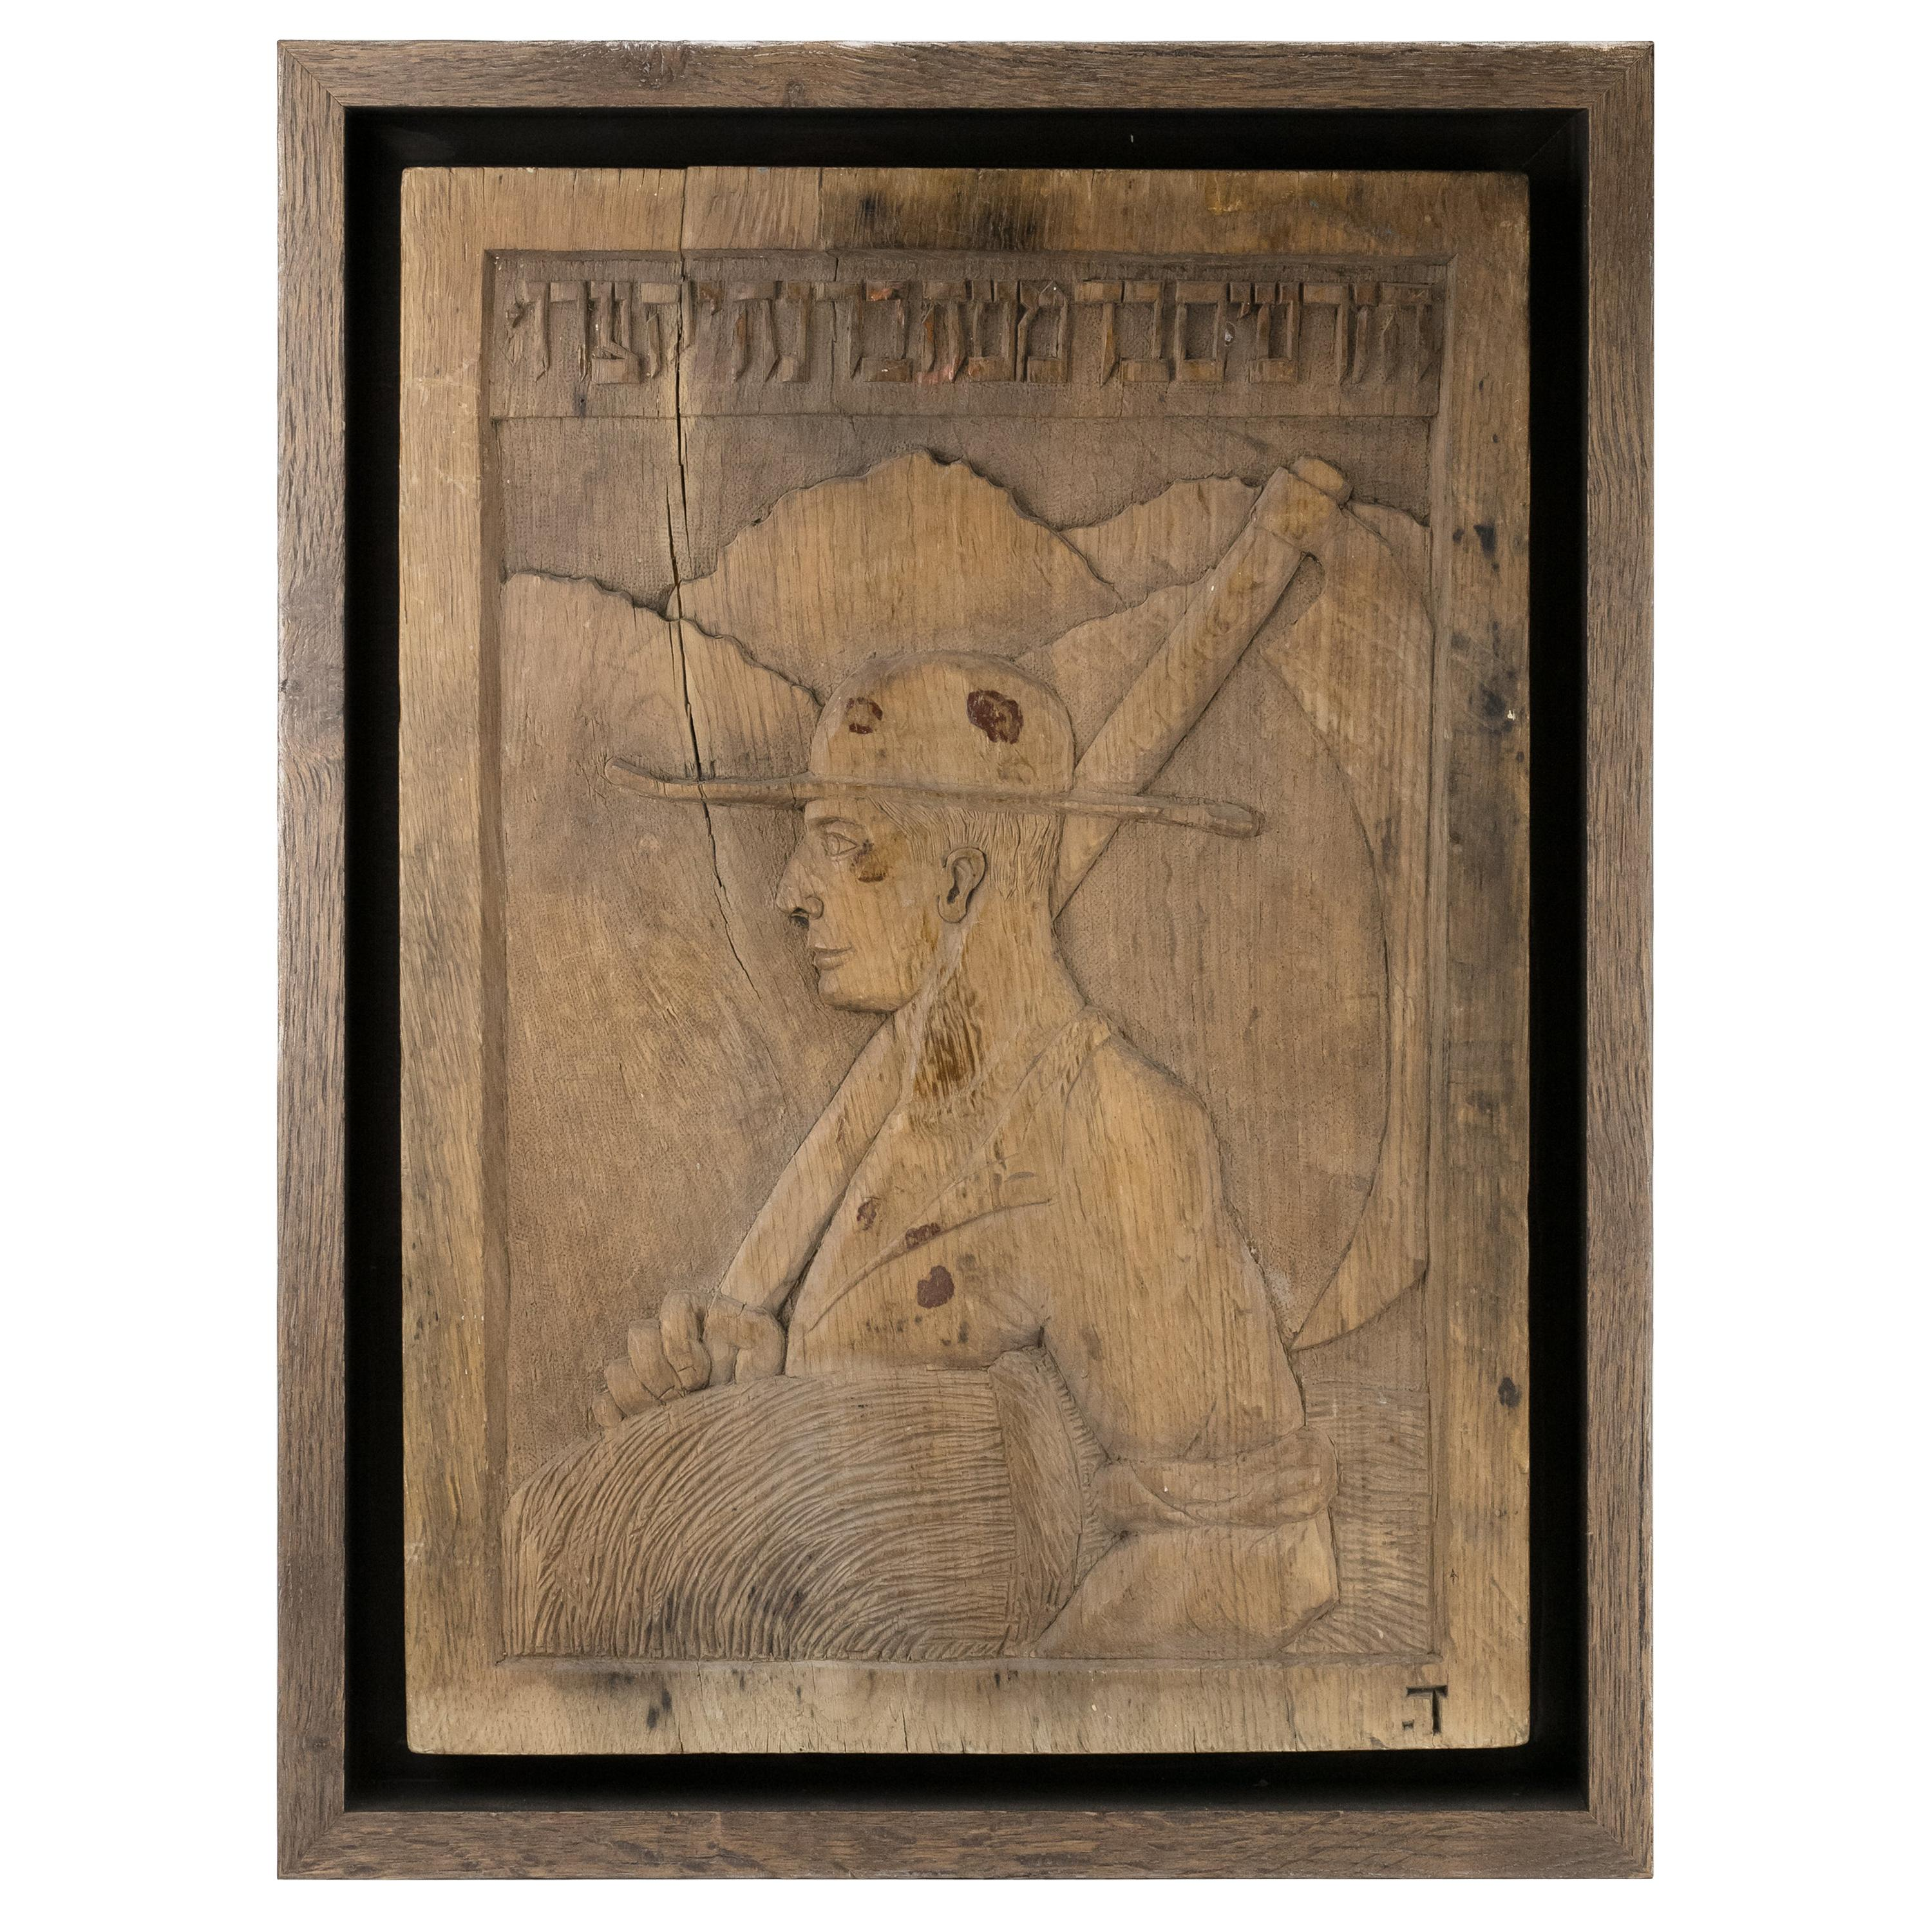 Late 19th Century Russian Wood Carving of a Jewish Pioneer